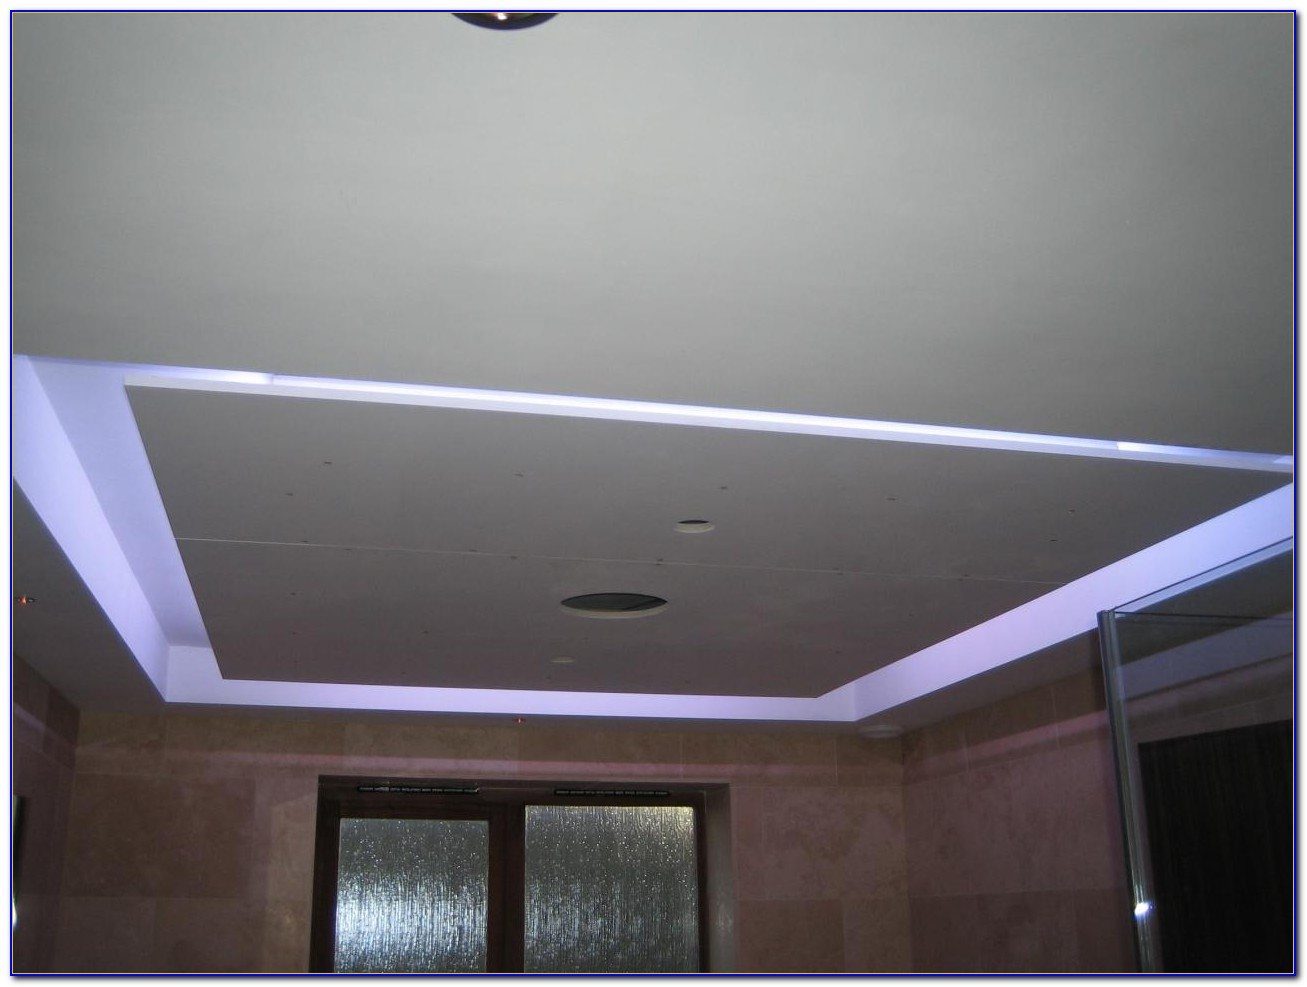 Halo Can Lights For Drop Ceiling